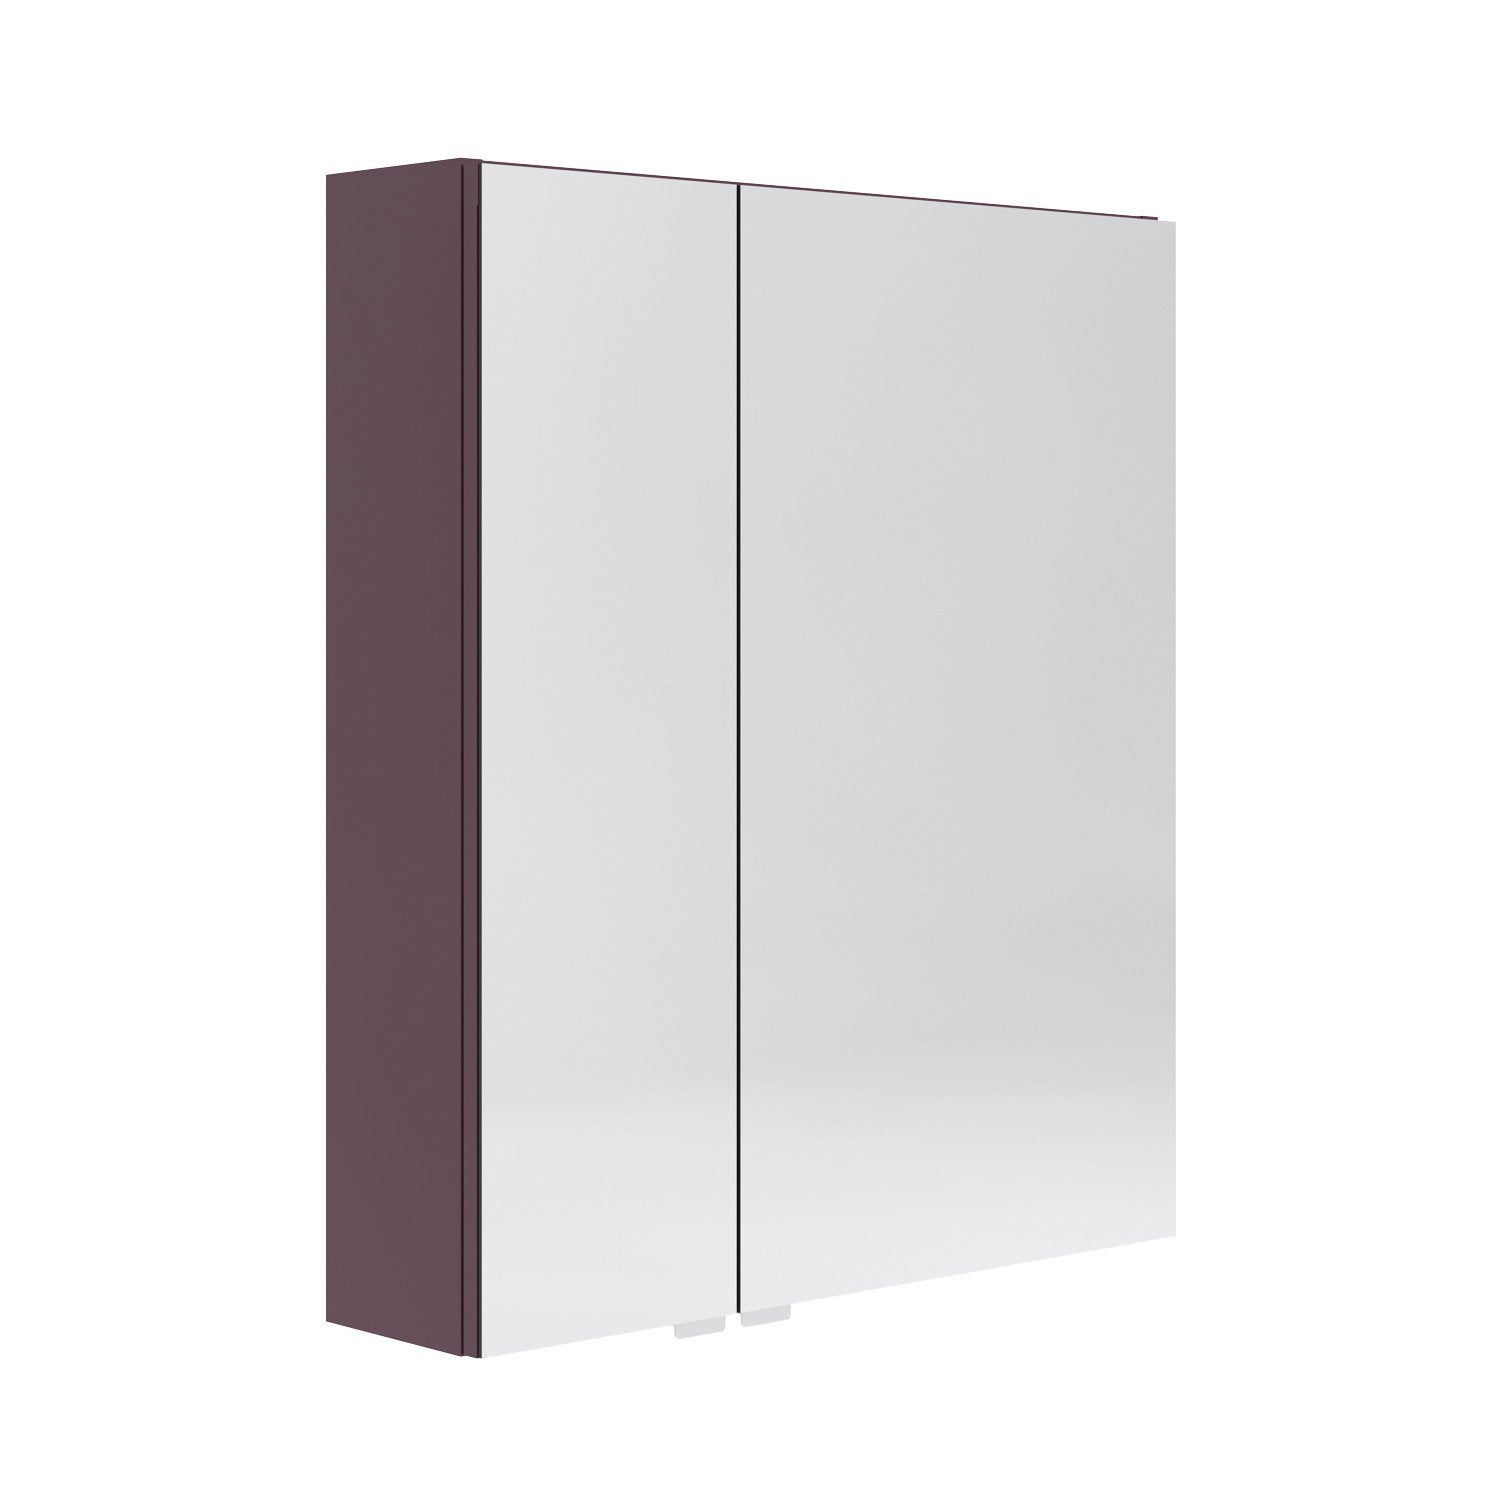 Armoire de toilette l 60 cm aubergine opale leroy merlin for Leroy merlin meuble toilette